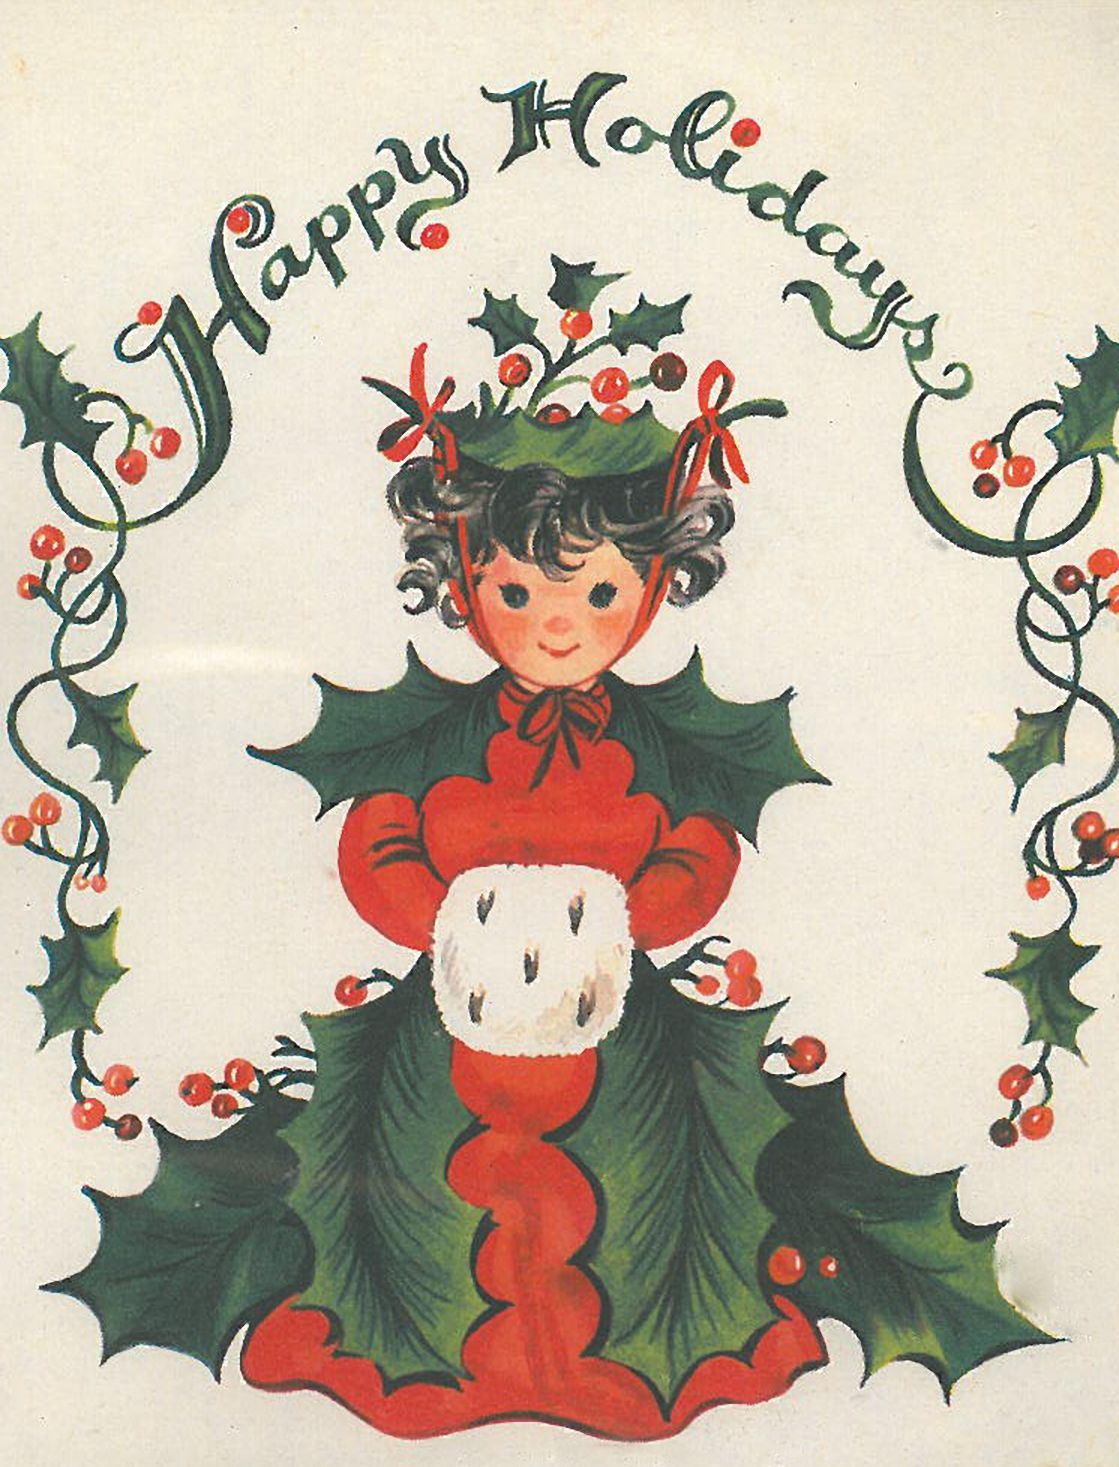 Vintage christmas cards american greetings archives vintage vintage christmas cards american greetings archives m4hsunfo